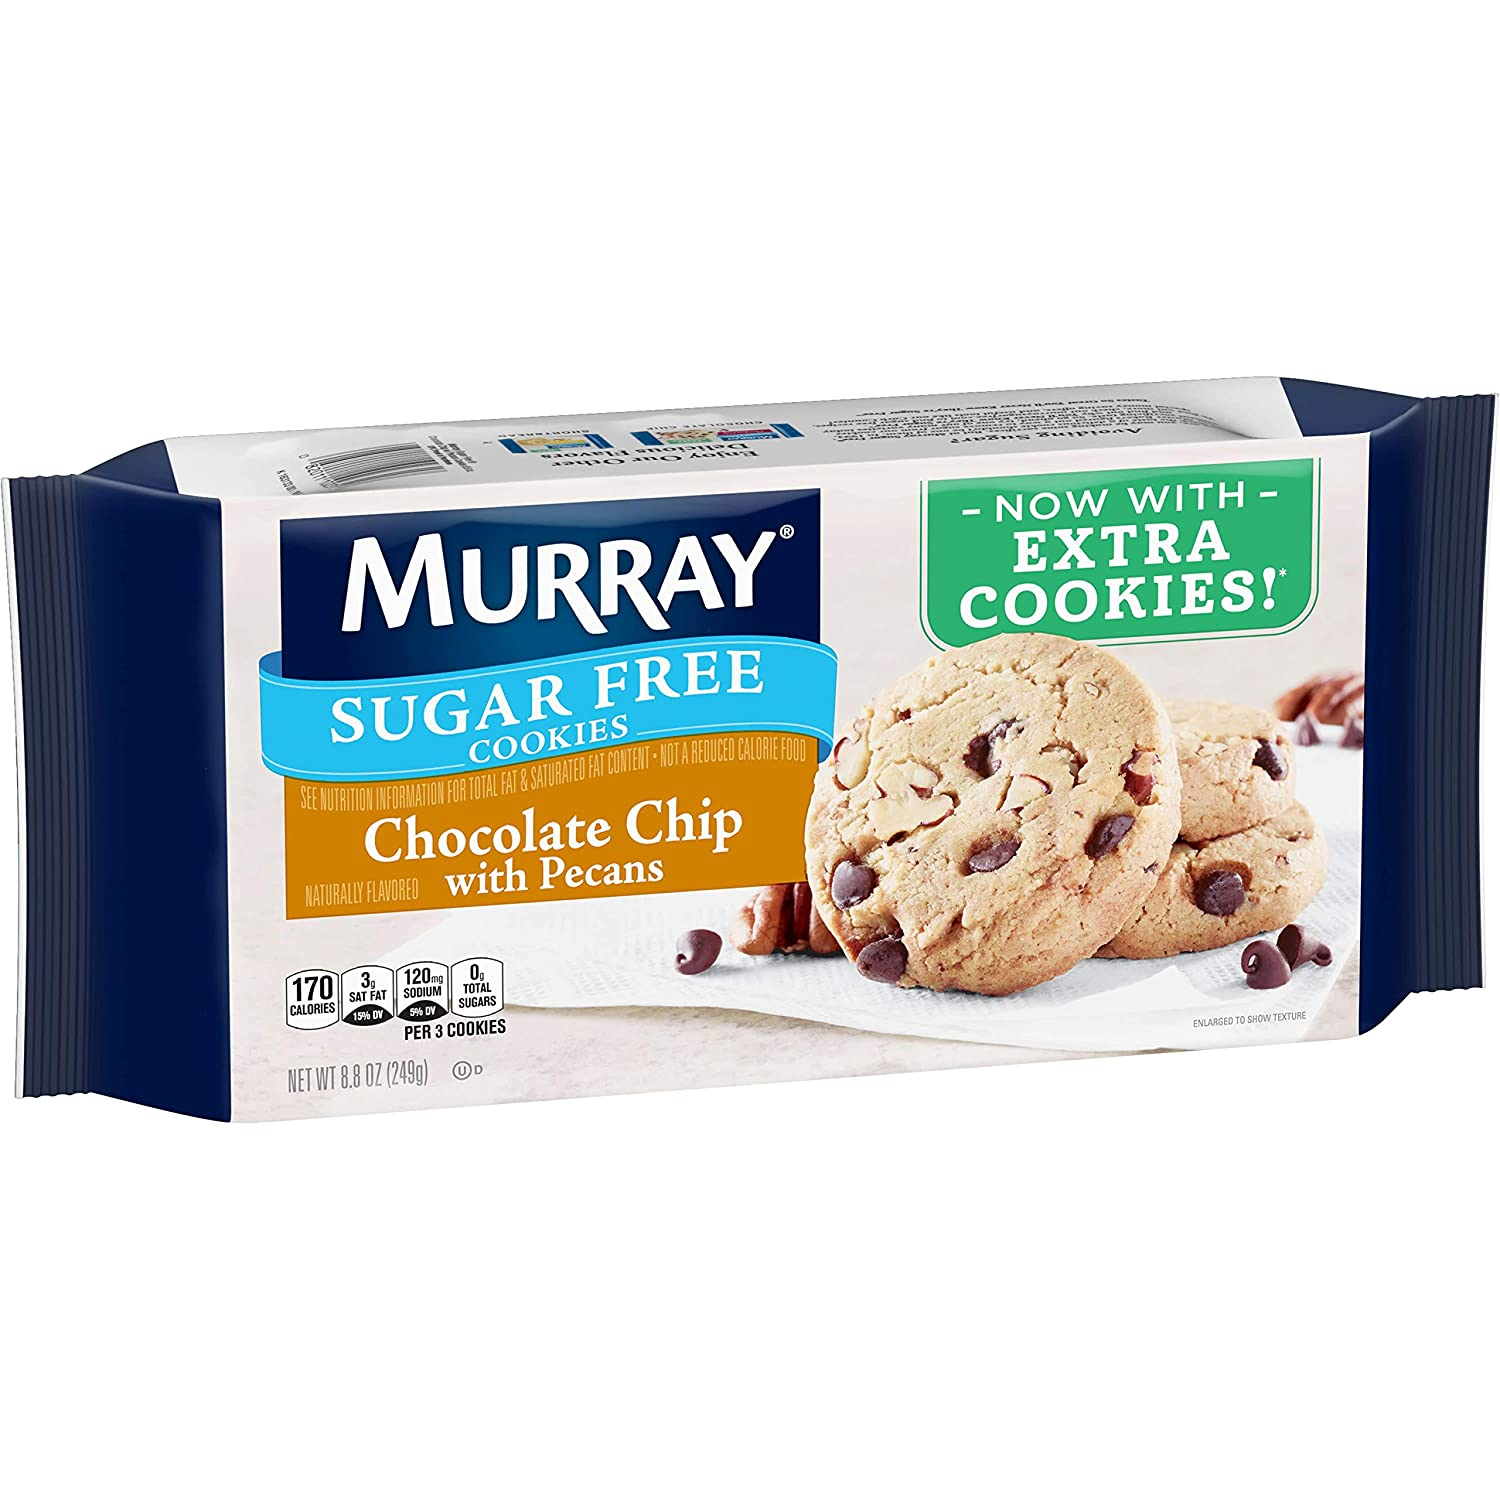 Murray Sugar Free Cookies, Chocolate Chip with Pecans, 8.8 oz Tray(Pack of 12)